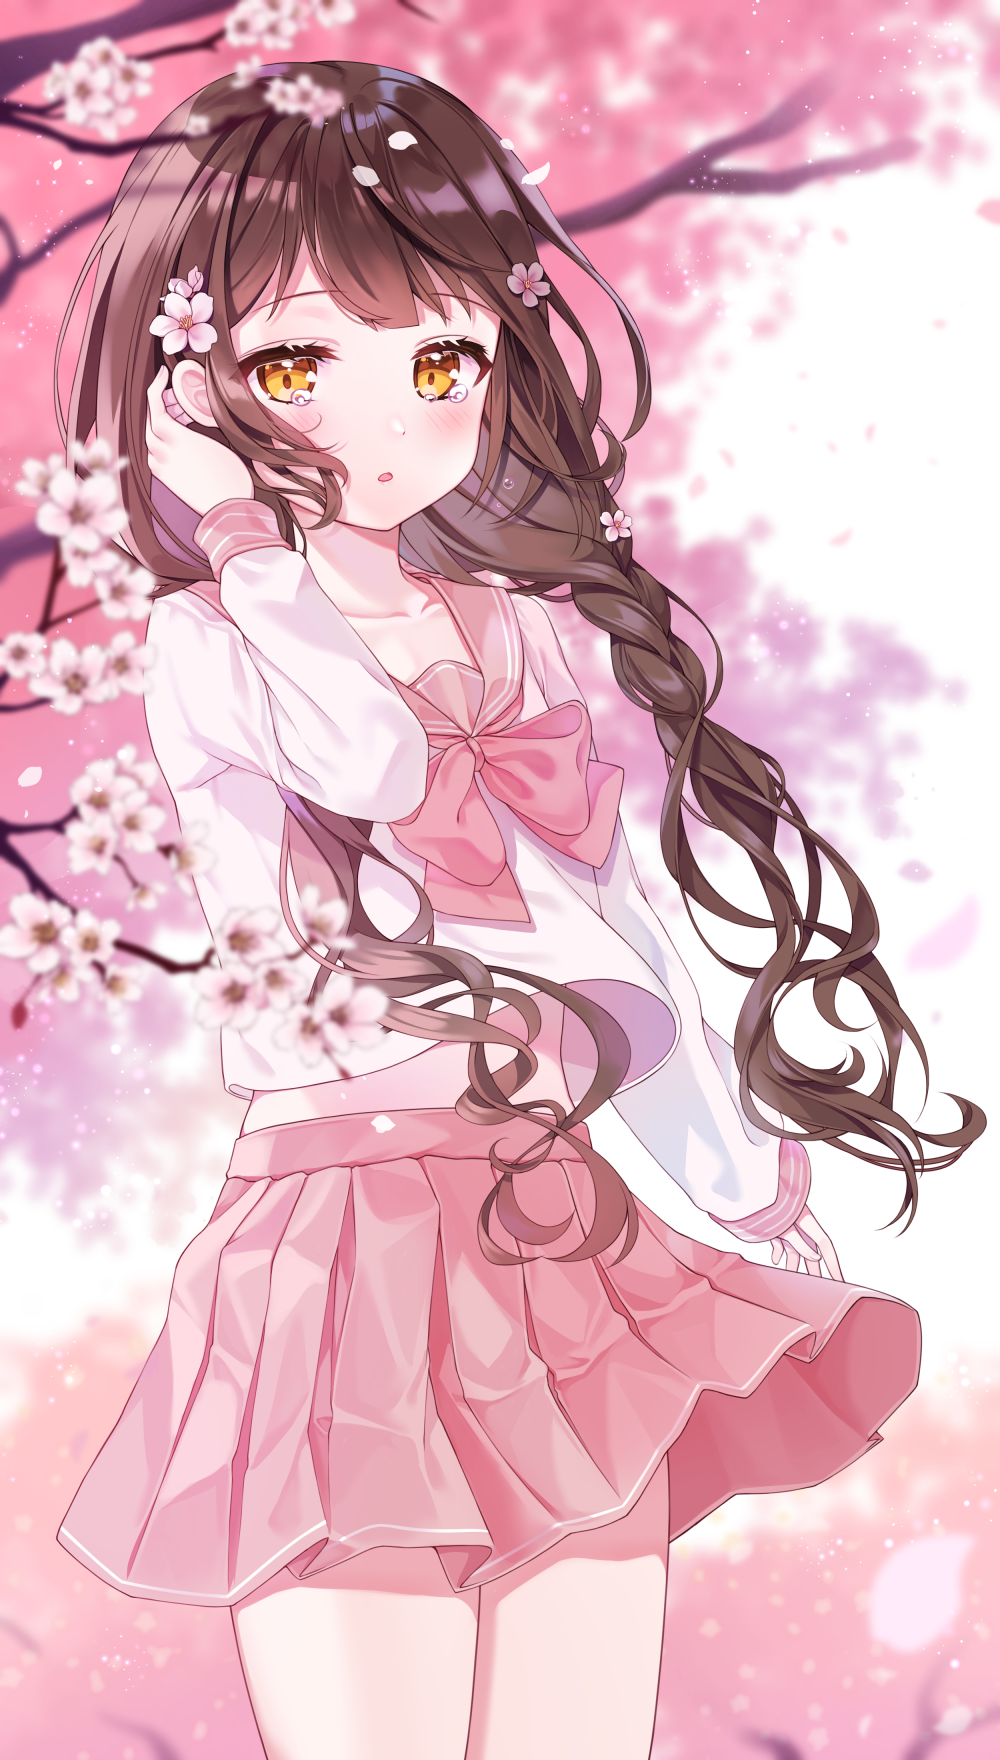 1girl :o bangs blurry blurry_background blurry_foreground blush bow brown_eyes brown_hair cherry_blossoms collarbone commentary depth_of_field eyebrows_visible_through_hair flower hand_up highres long_hair long_sleeves looking_at_viewer original parted_lips petals pink_bow pink_sailor_collar pink_skirt pleated_skirt reel37891 sailor_collar school_uniform serafuku shirt skirt solo symbol_commentary tears tree_branch very_long_hair white_flower white_shirt